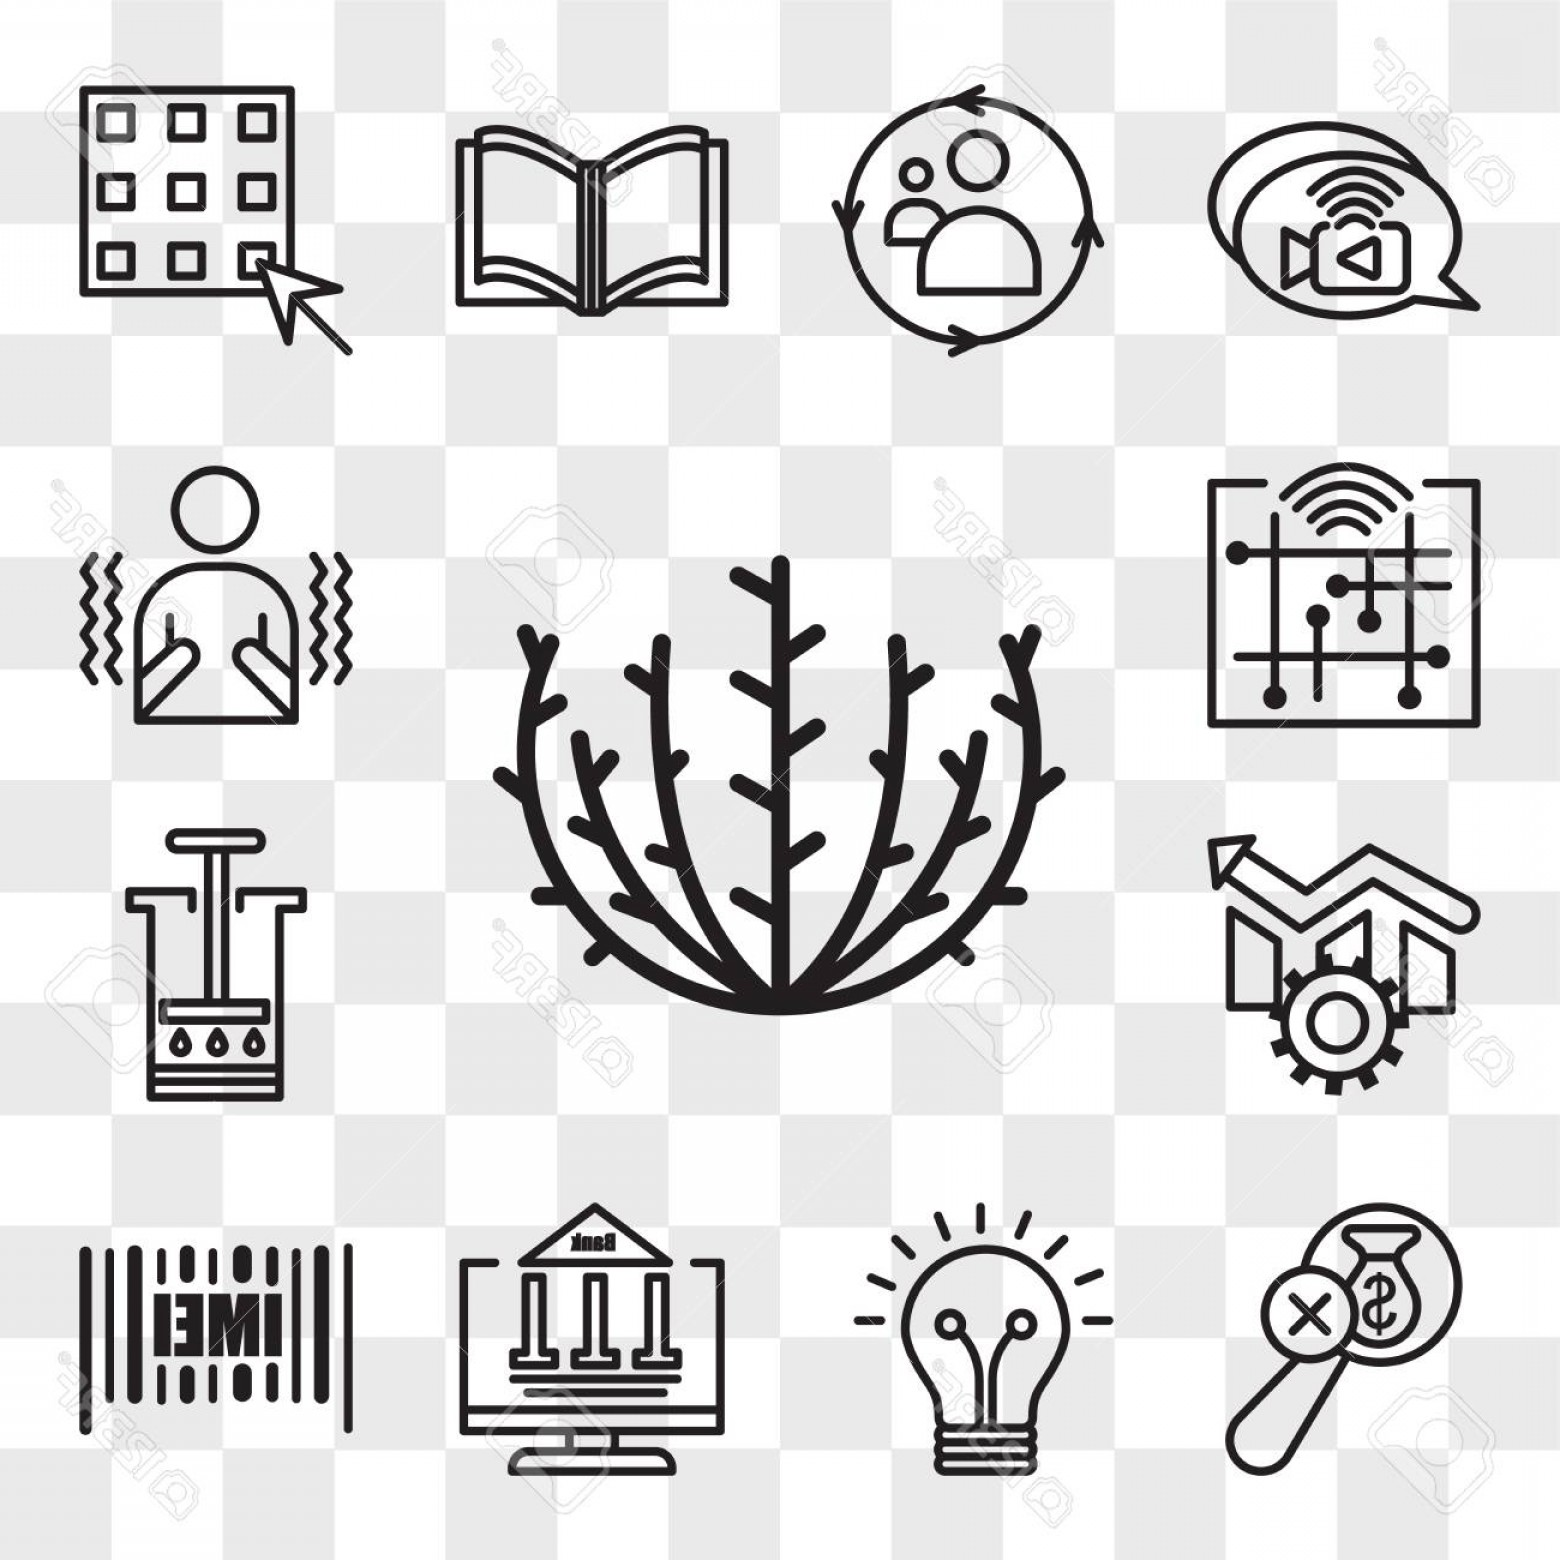 Smarter Vector Art: Photostock Vector Set Of Transparent Icons Such As Tumbleweed Imei Netbanking Smarter No Hidden Fees Aeropress Oper